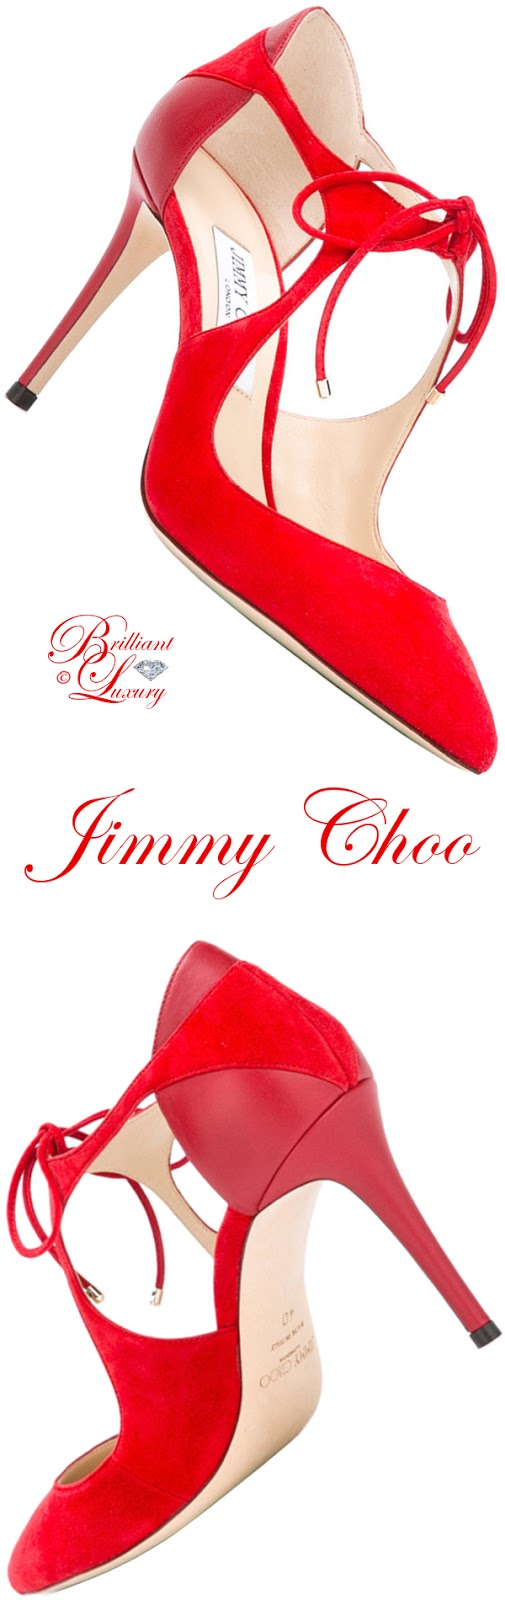 Brilliant Luxury ♦ Jimmy Choo tie-tront pumps